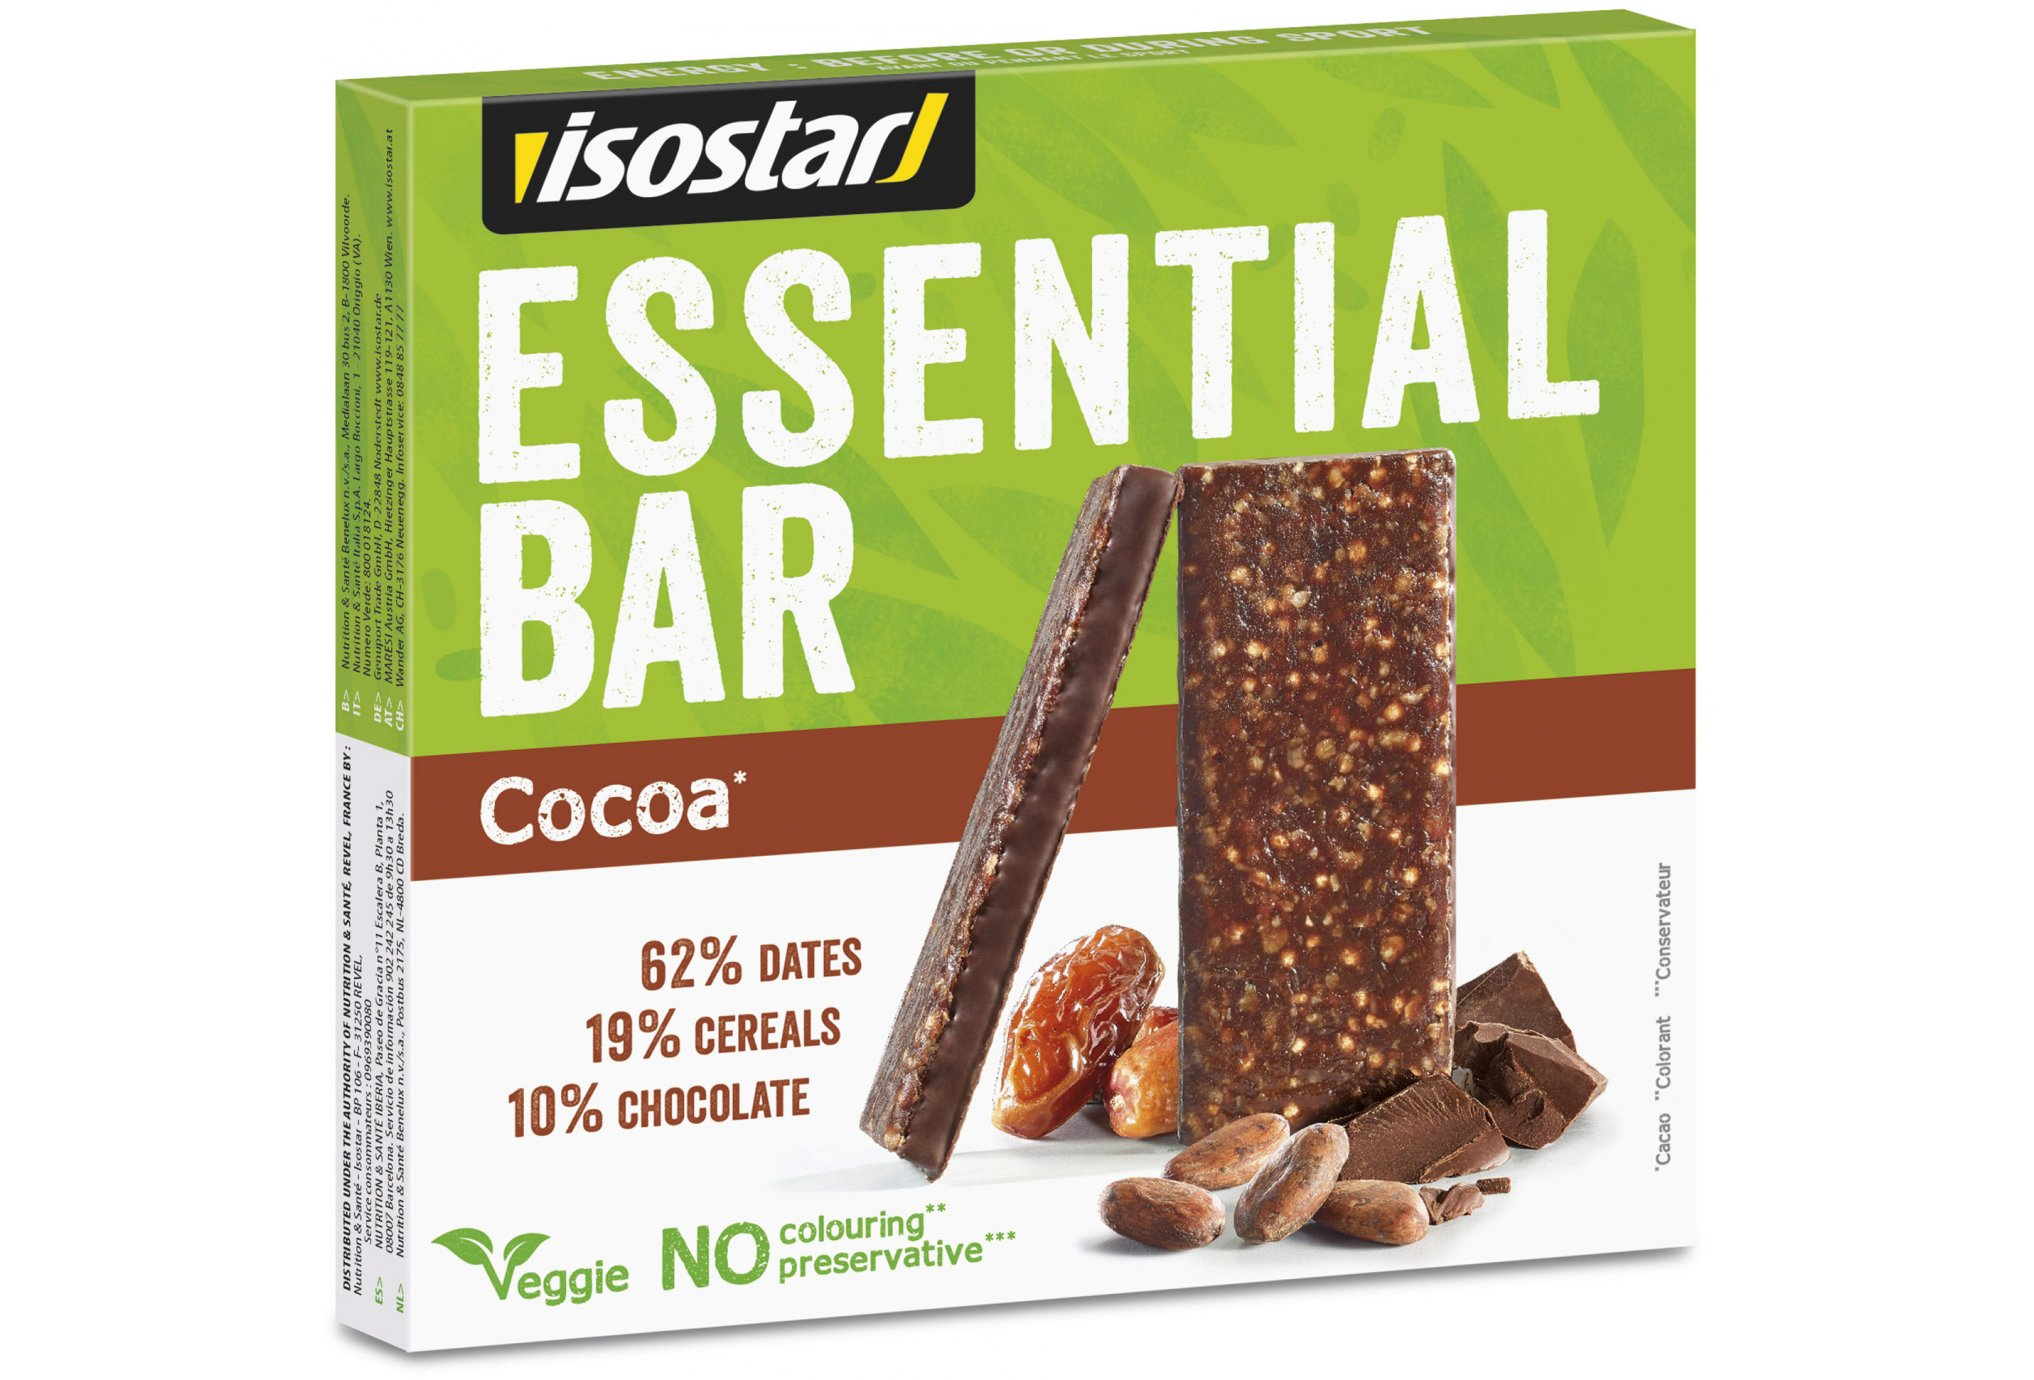 Isostar Pack barritas Essential Bar - Cacao Diététique Barres